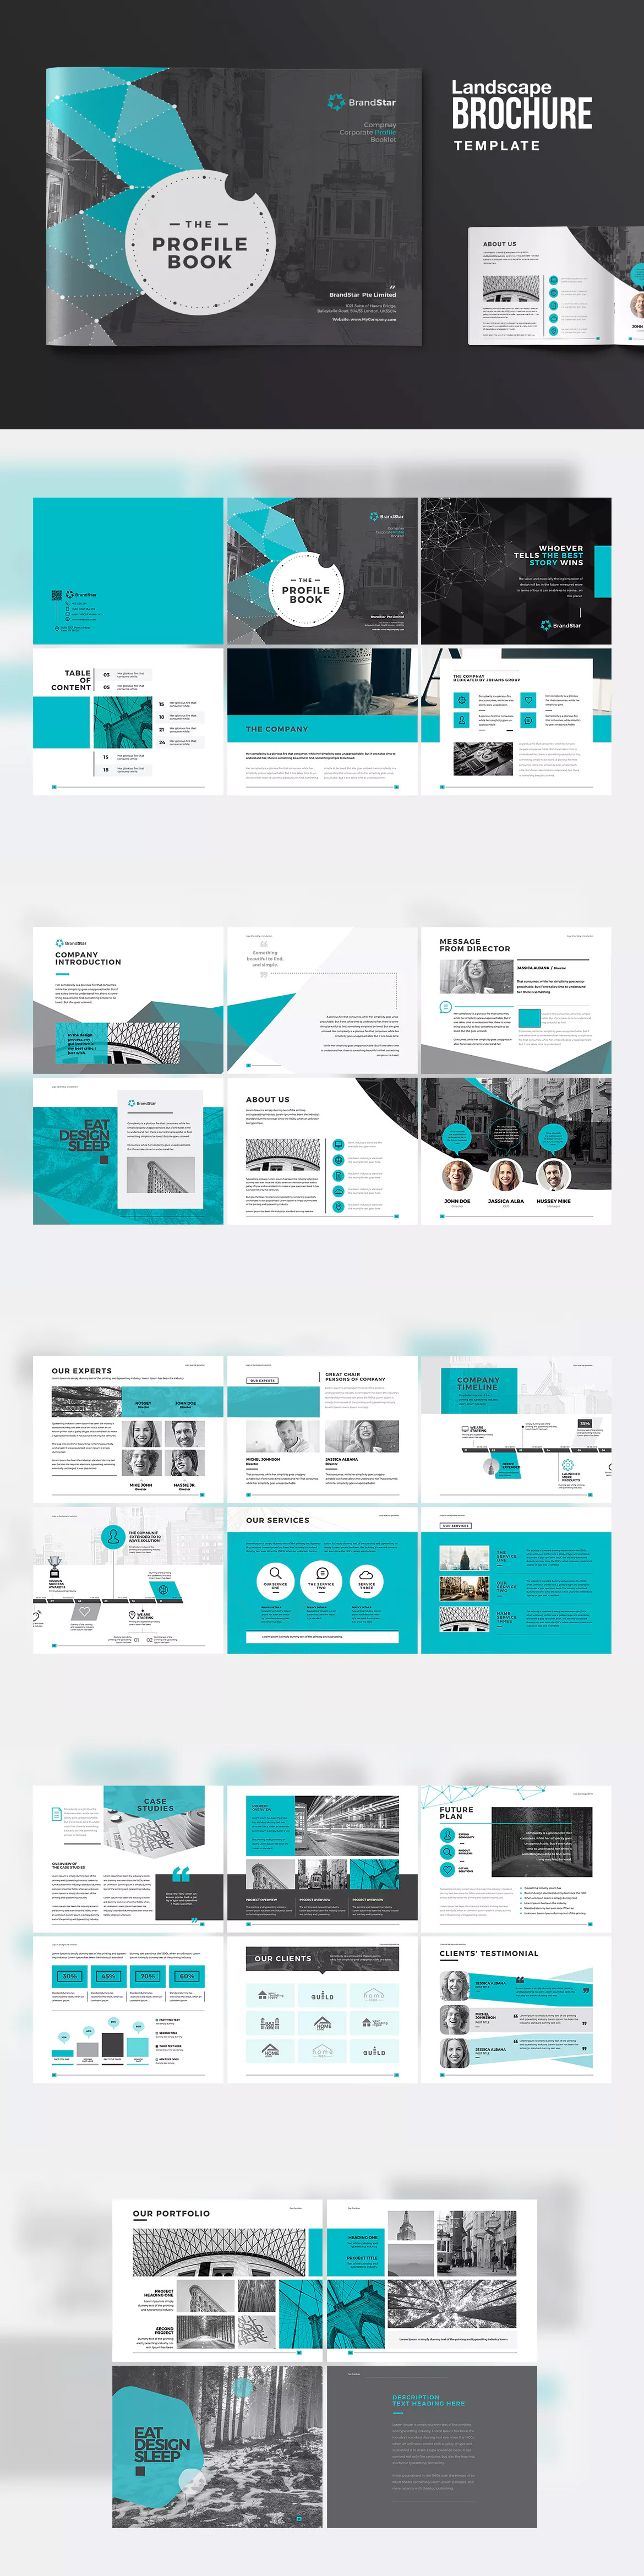 Landscape Company Profile Template Pages INDD Company - Company profile brochure template